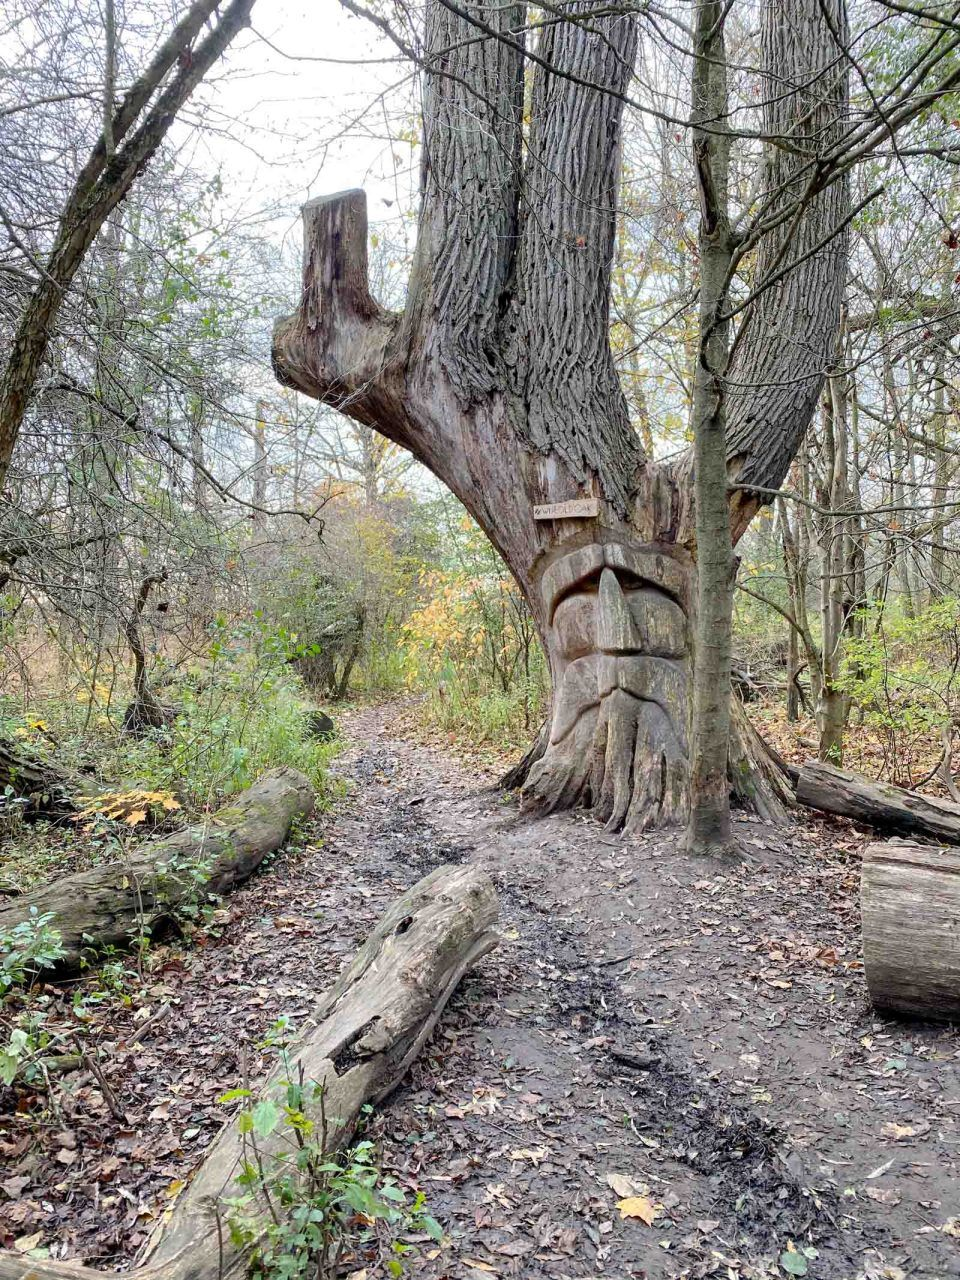 How To Find The Wise Old Oak Chic Everywhere Ontario Road Trip Canada Travel Day Trips